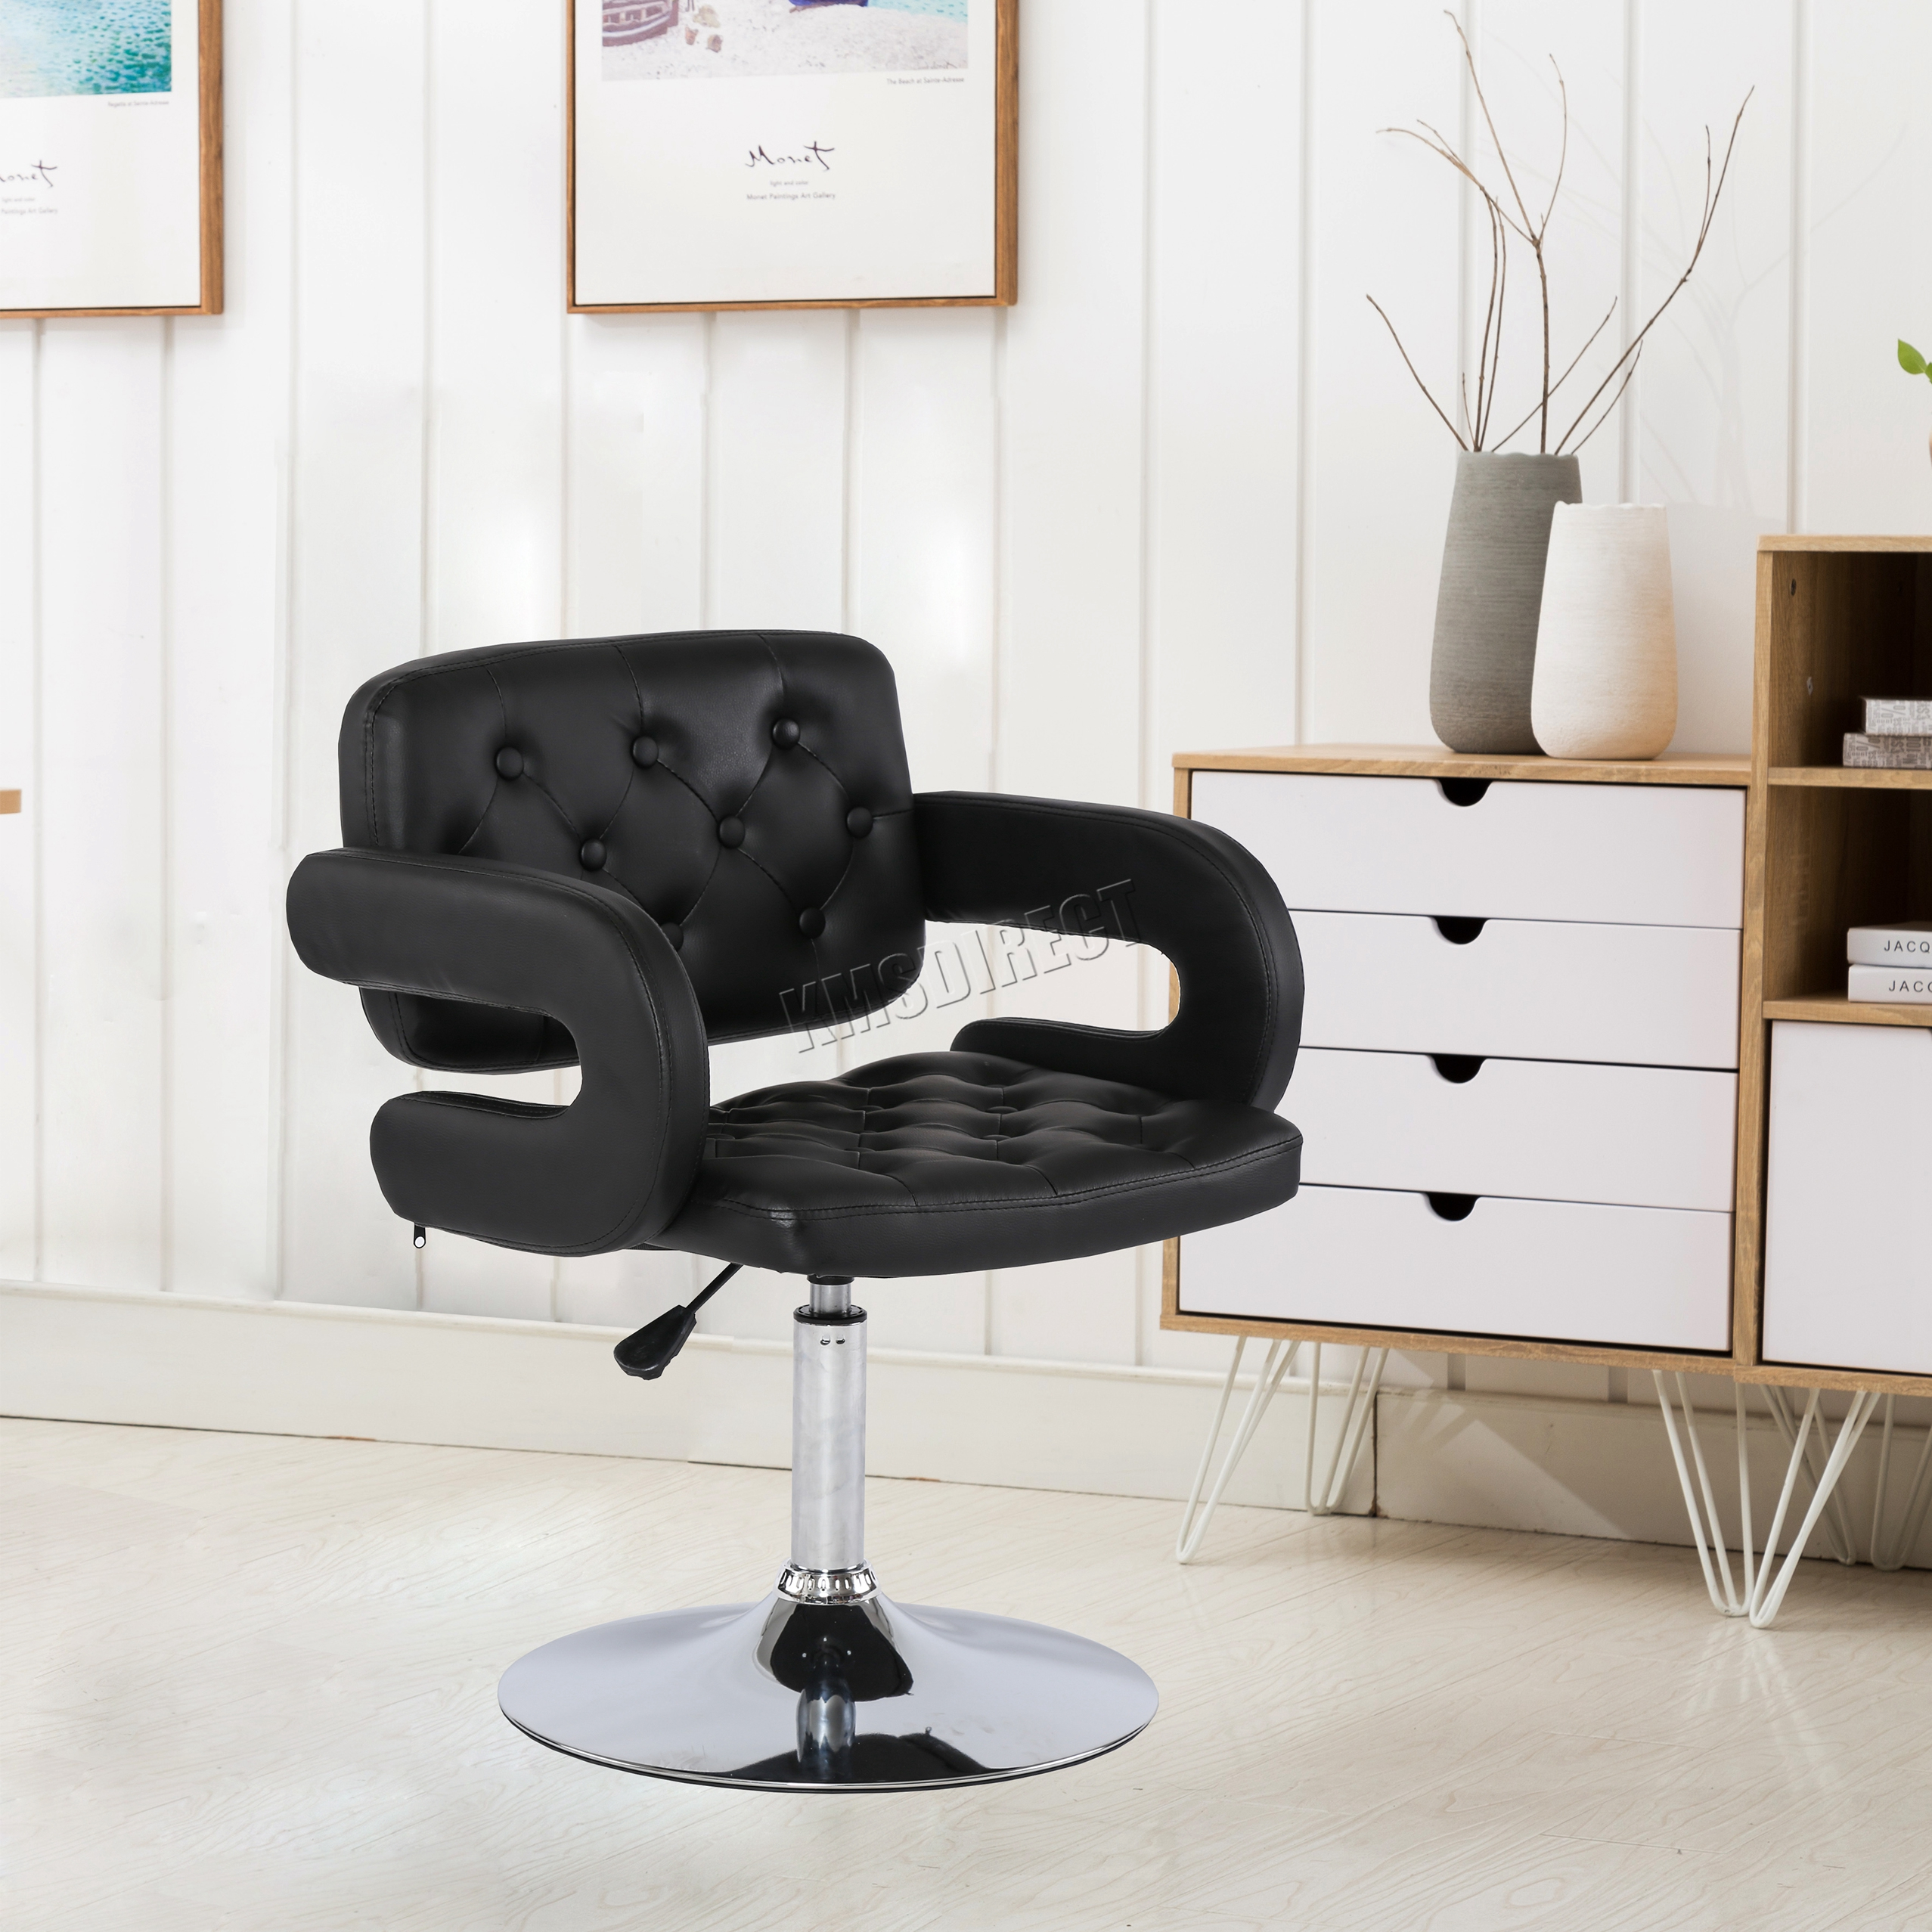 Cosmetology Chair Foxhunter Beauty Salon Chair Barber Hairdressing Hair Cut